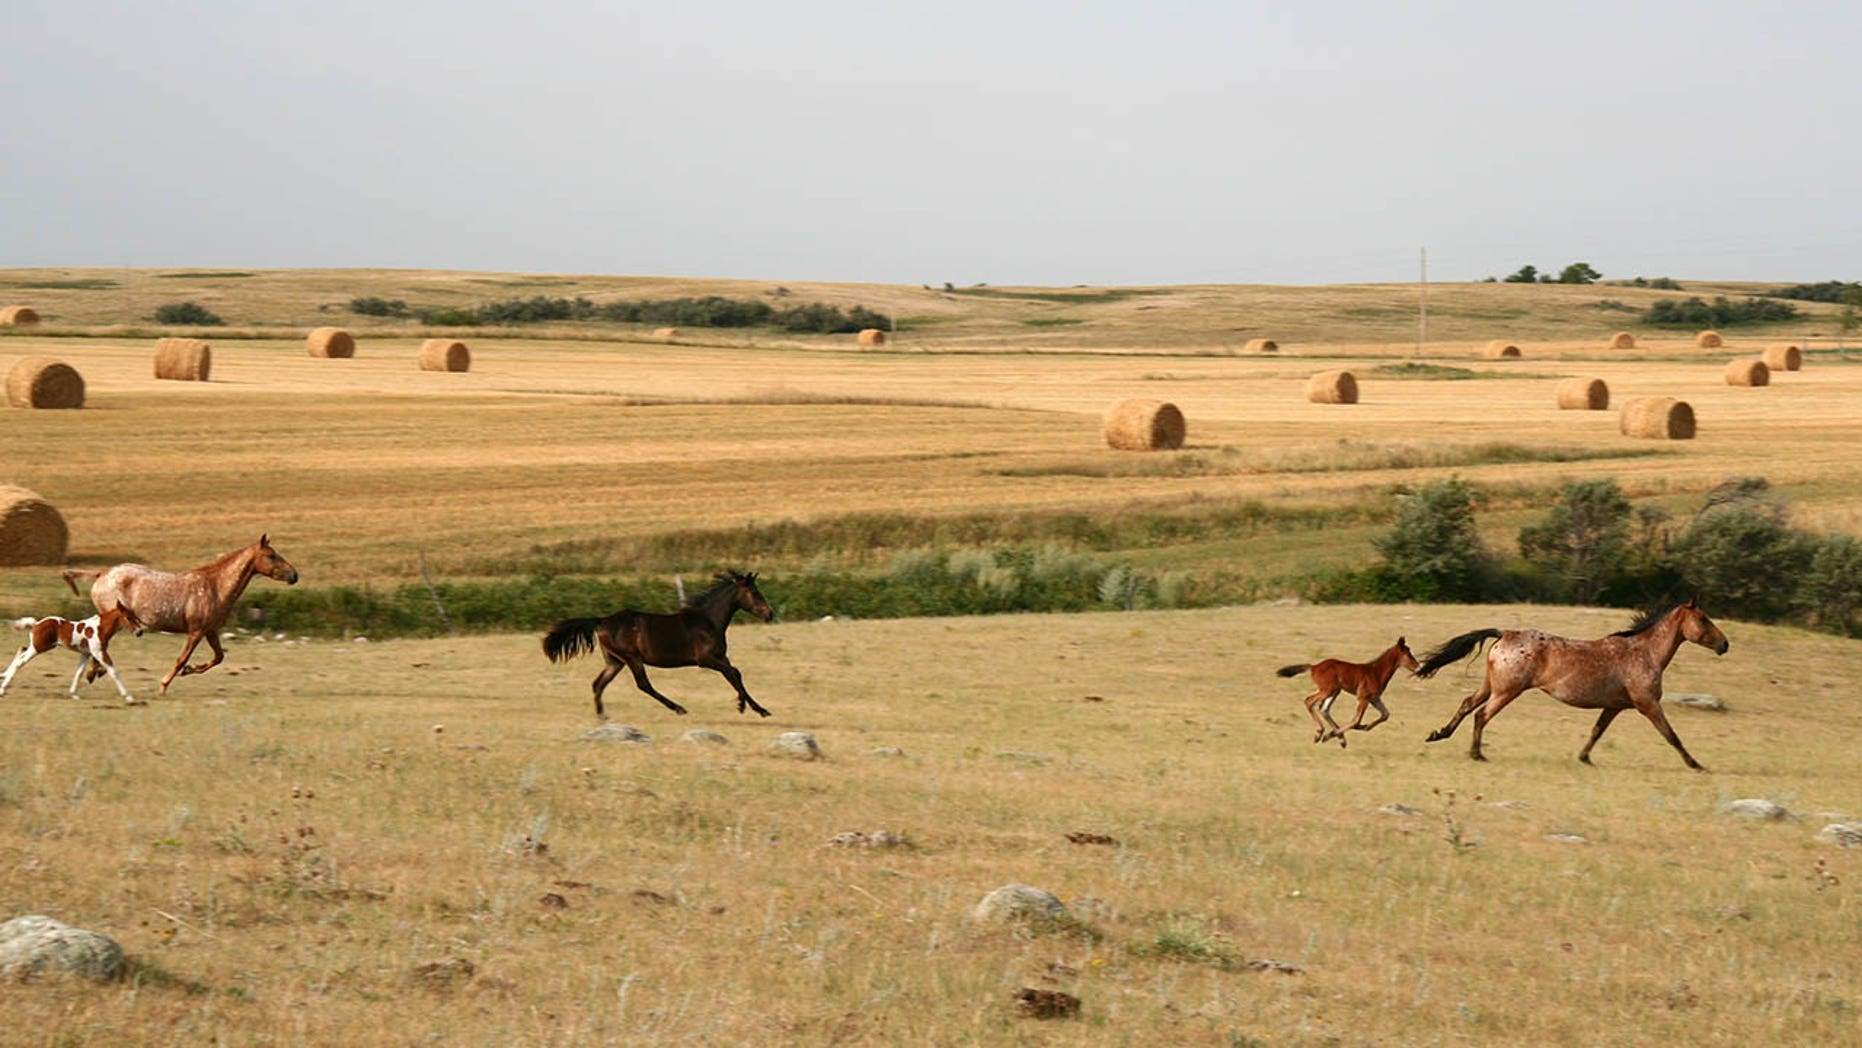 The US government offers an incentive of $ 1,000 for those who wish to adopt untrained wild horses or burros.